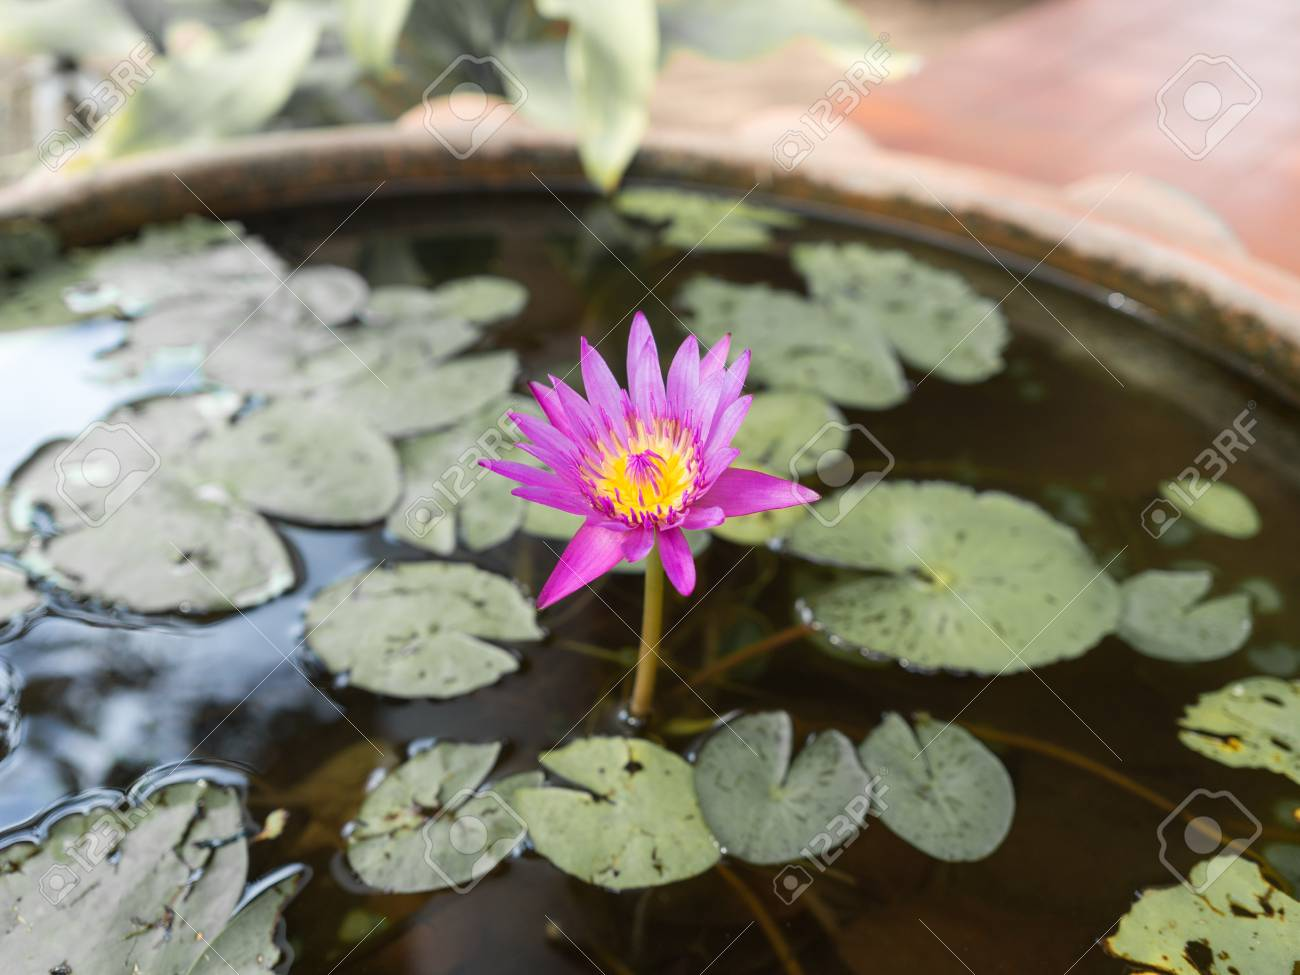 Pink Lotus Blossoms Or Water Lily Flowers Blooming On Pondpink